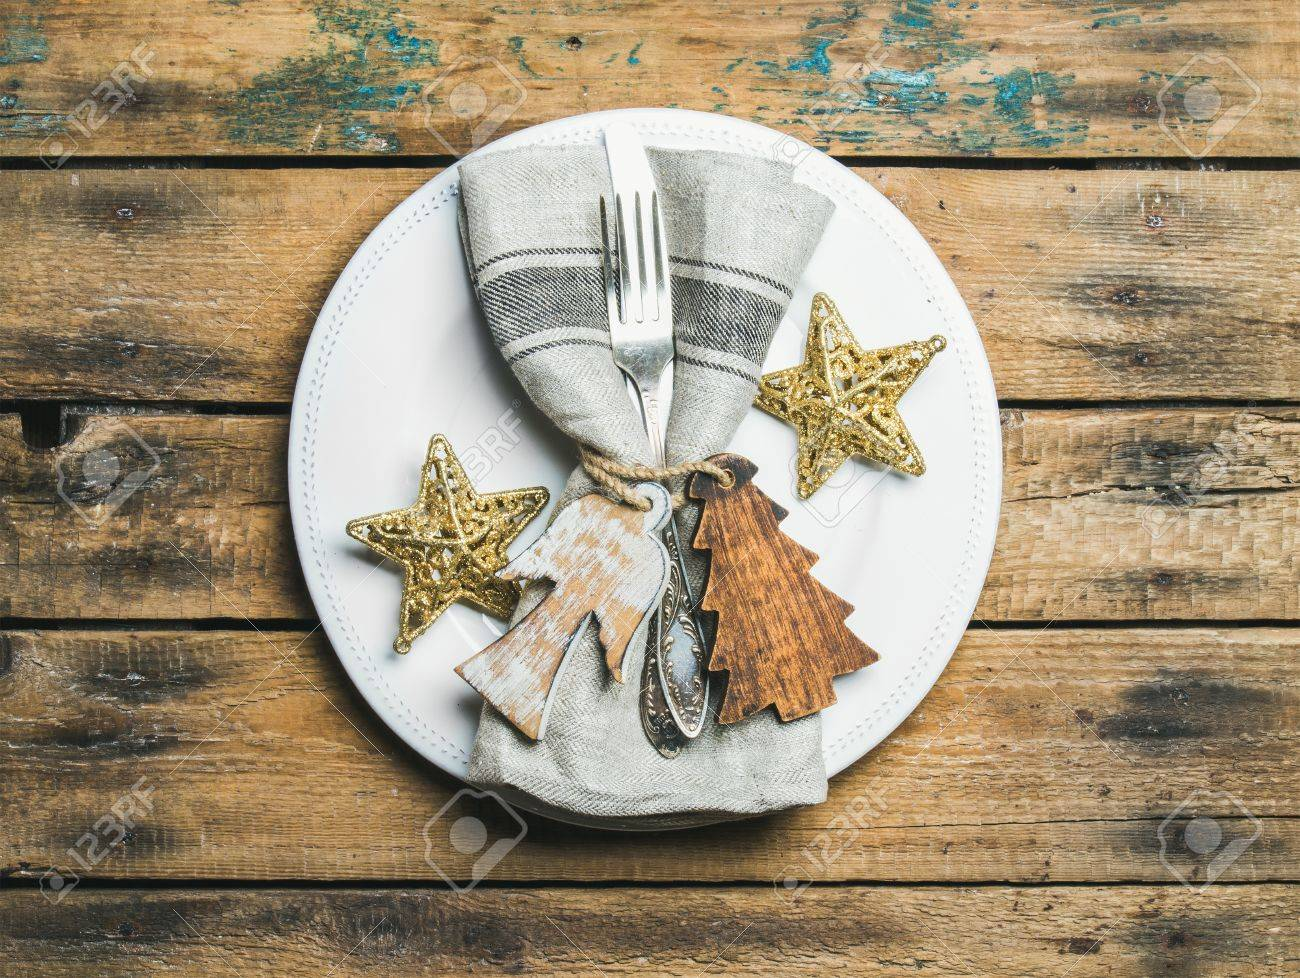 Christmas Or New Year Holiday Rustic Table Setting White Plate Stock Photo Picture And Royalty Free Image Image 67397353